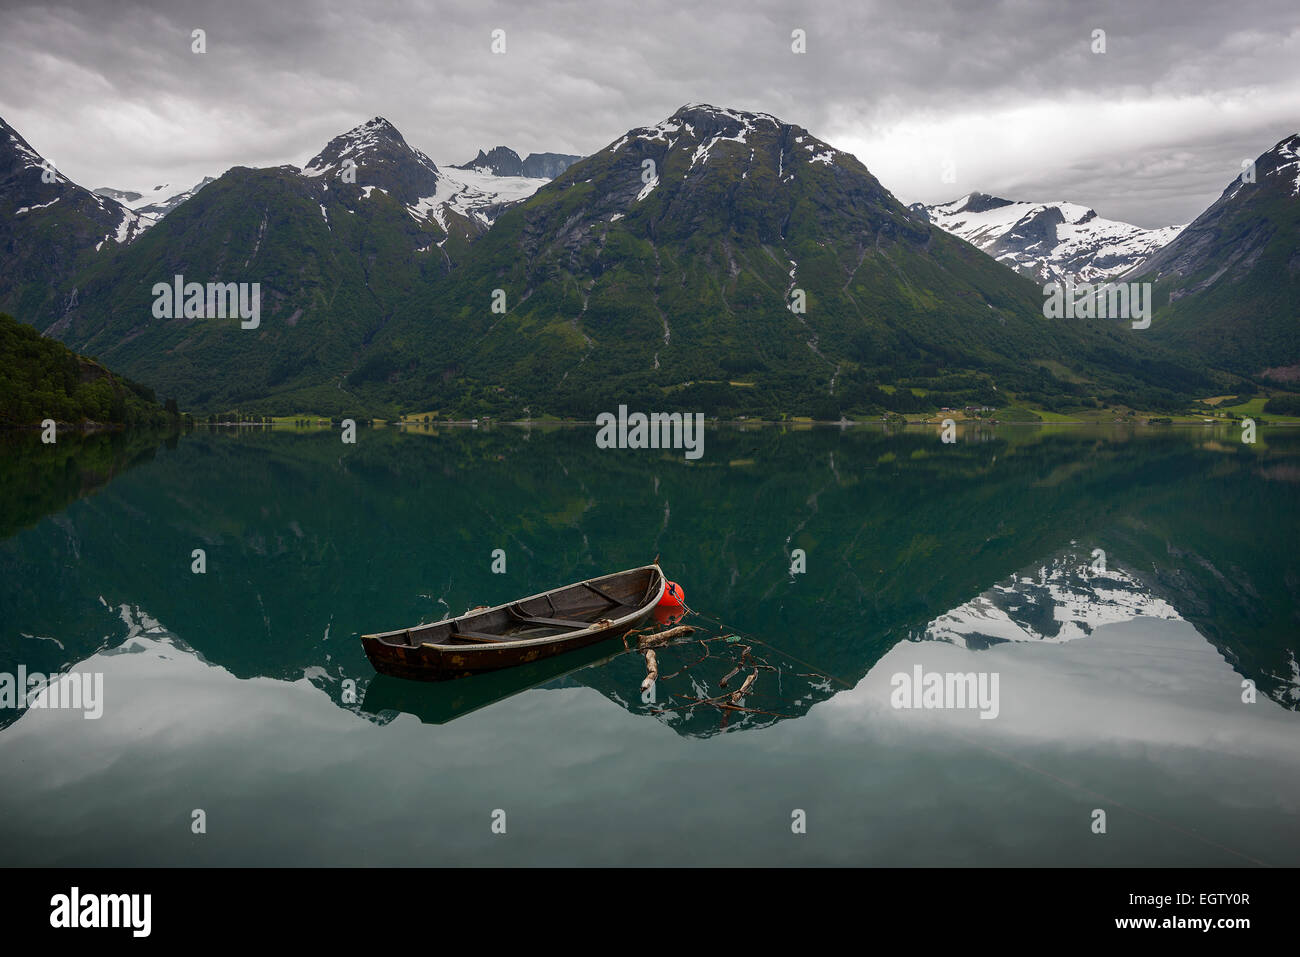 An old row boat in the still water of Oppstrynsvatnet with reflection of the mountains in a Norwegian landscape - Stock Image